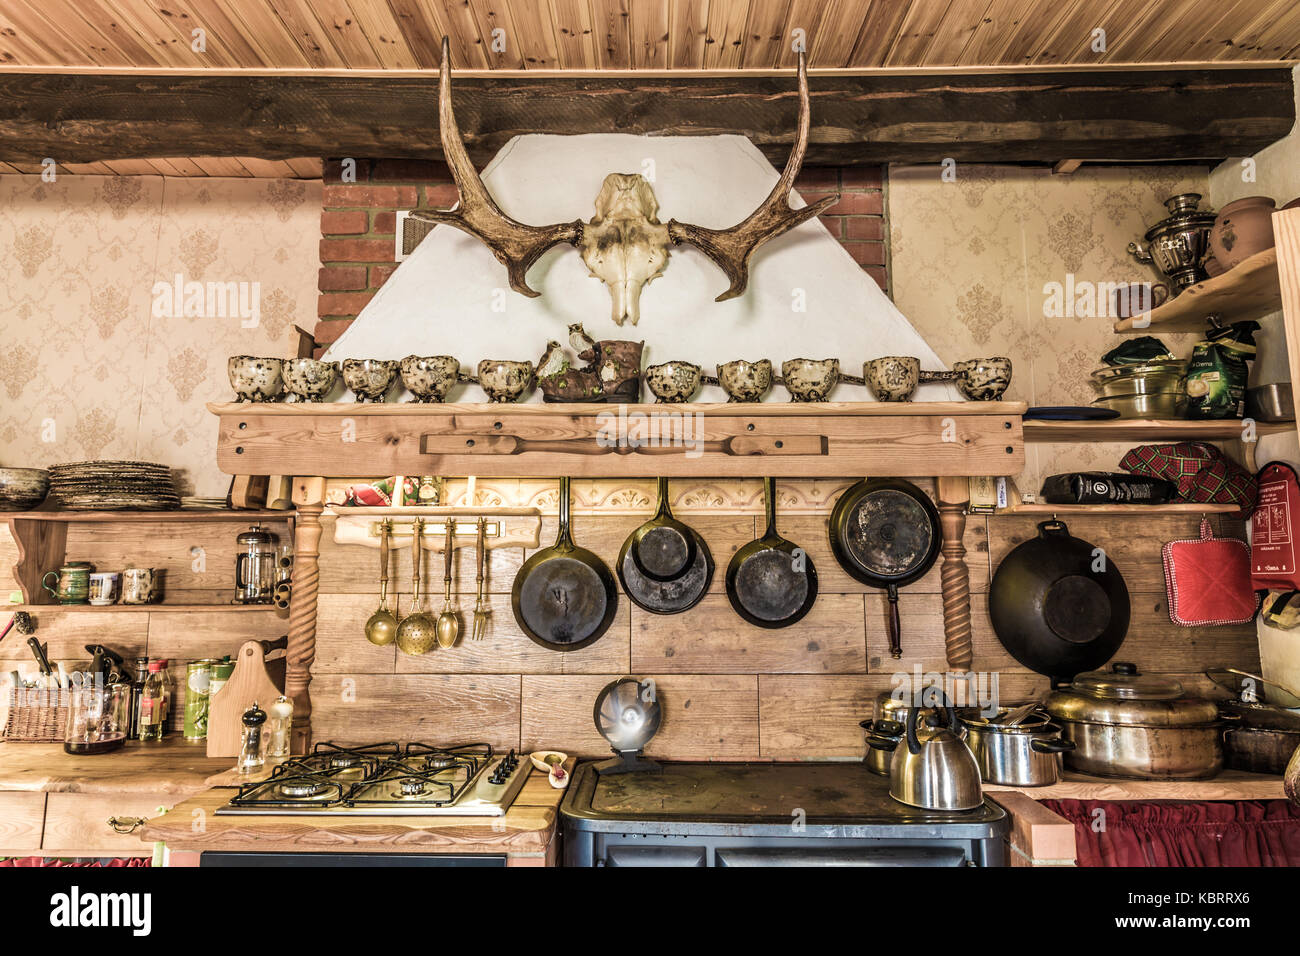 Rustic style kitchen with pots and pans Stock Photo